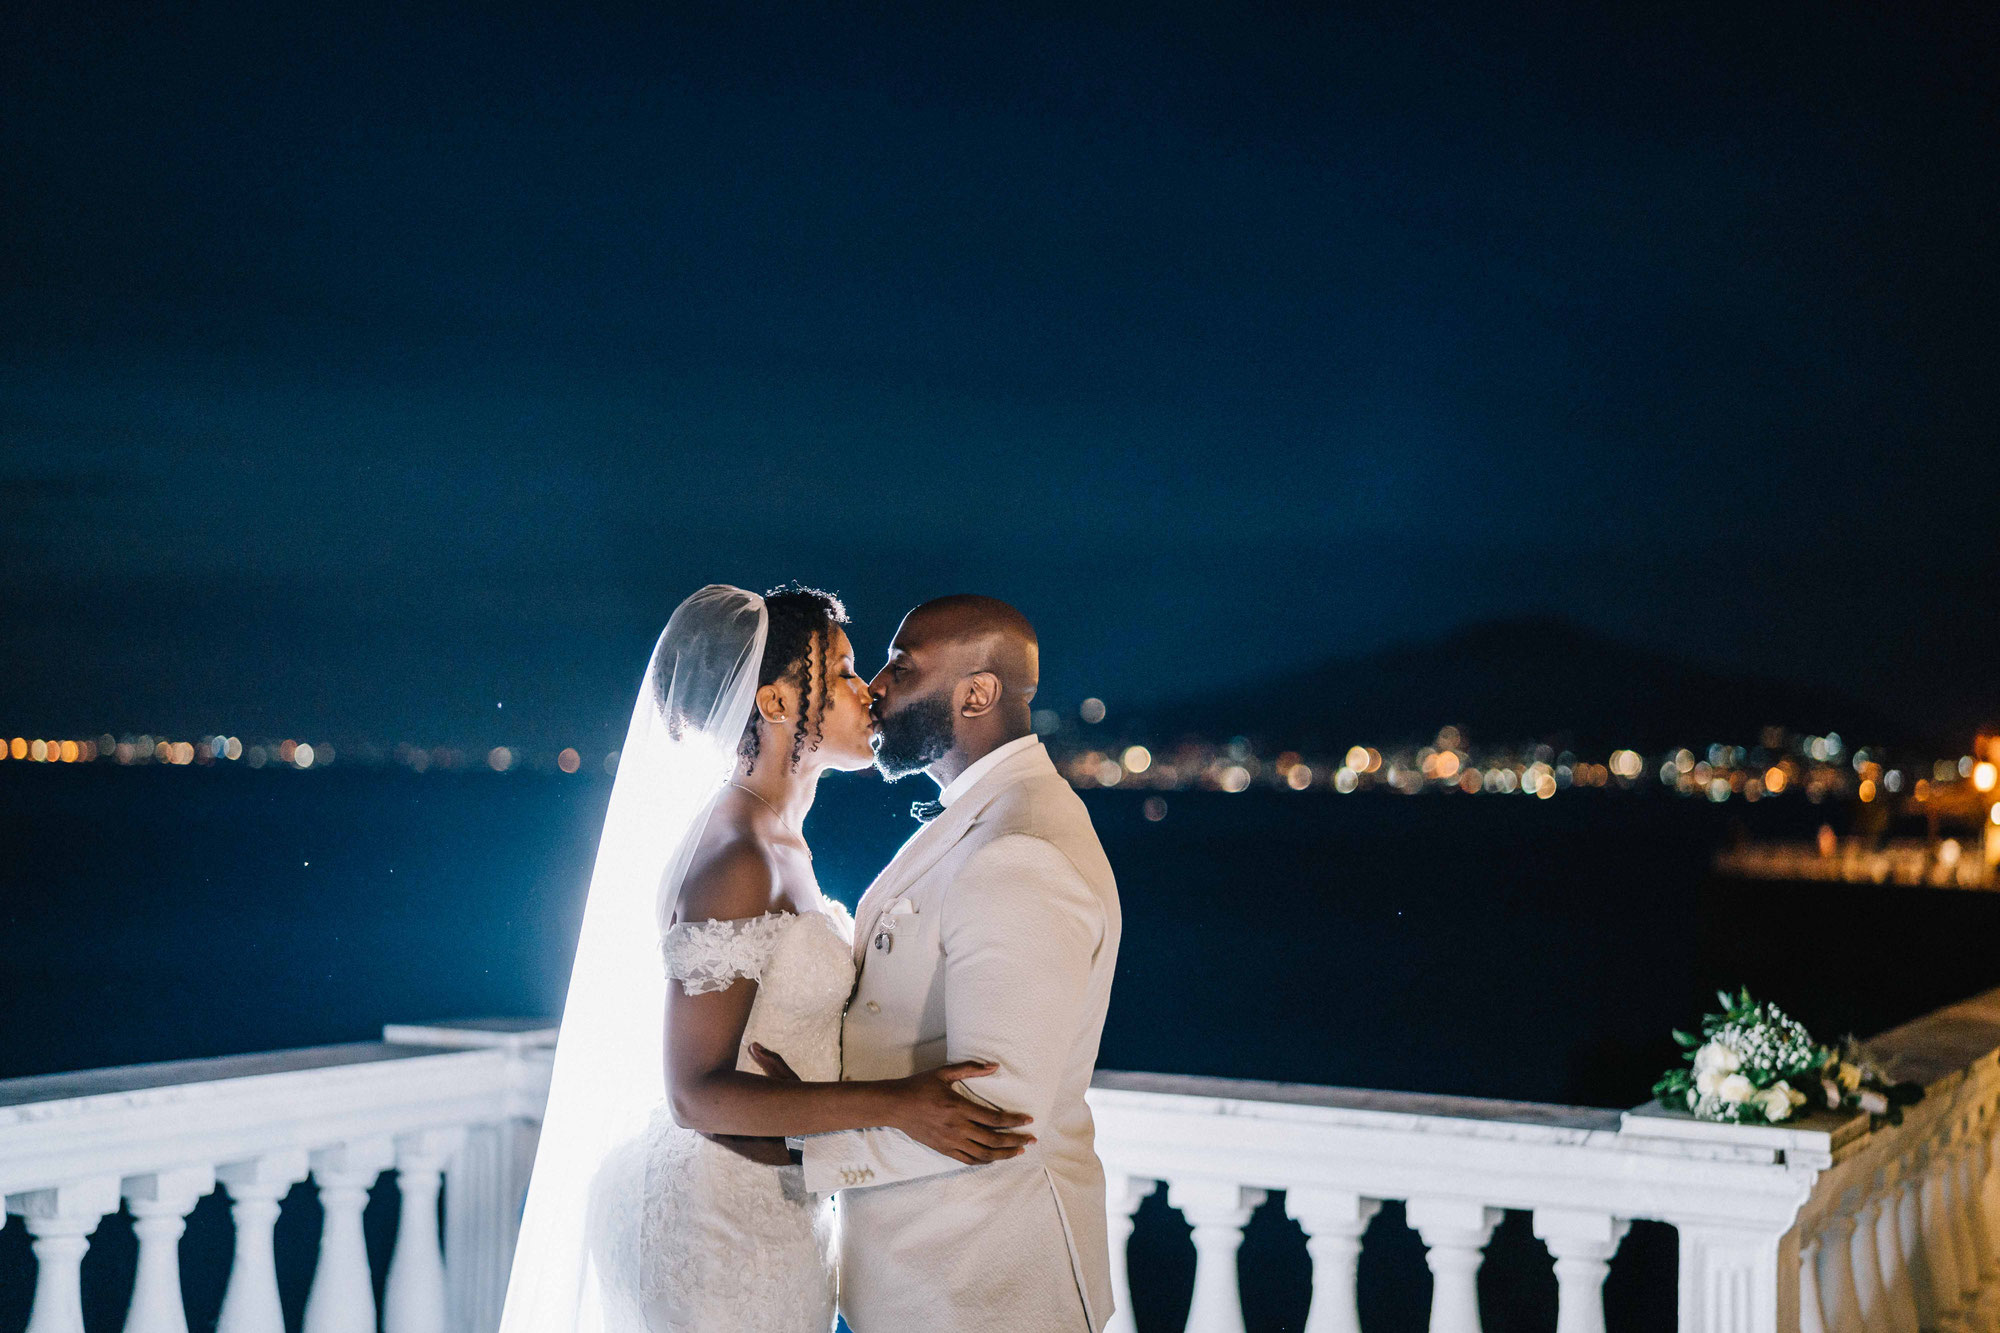 Wedding in Sorrento // Marva & Philip